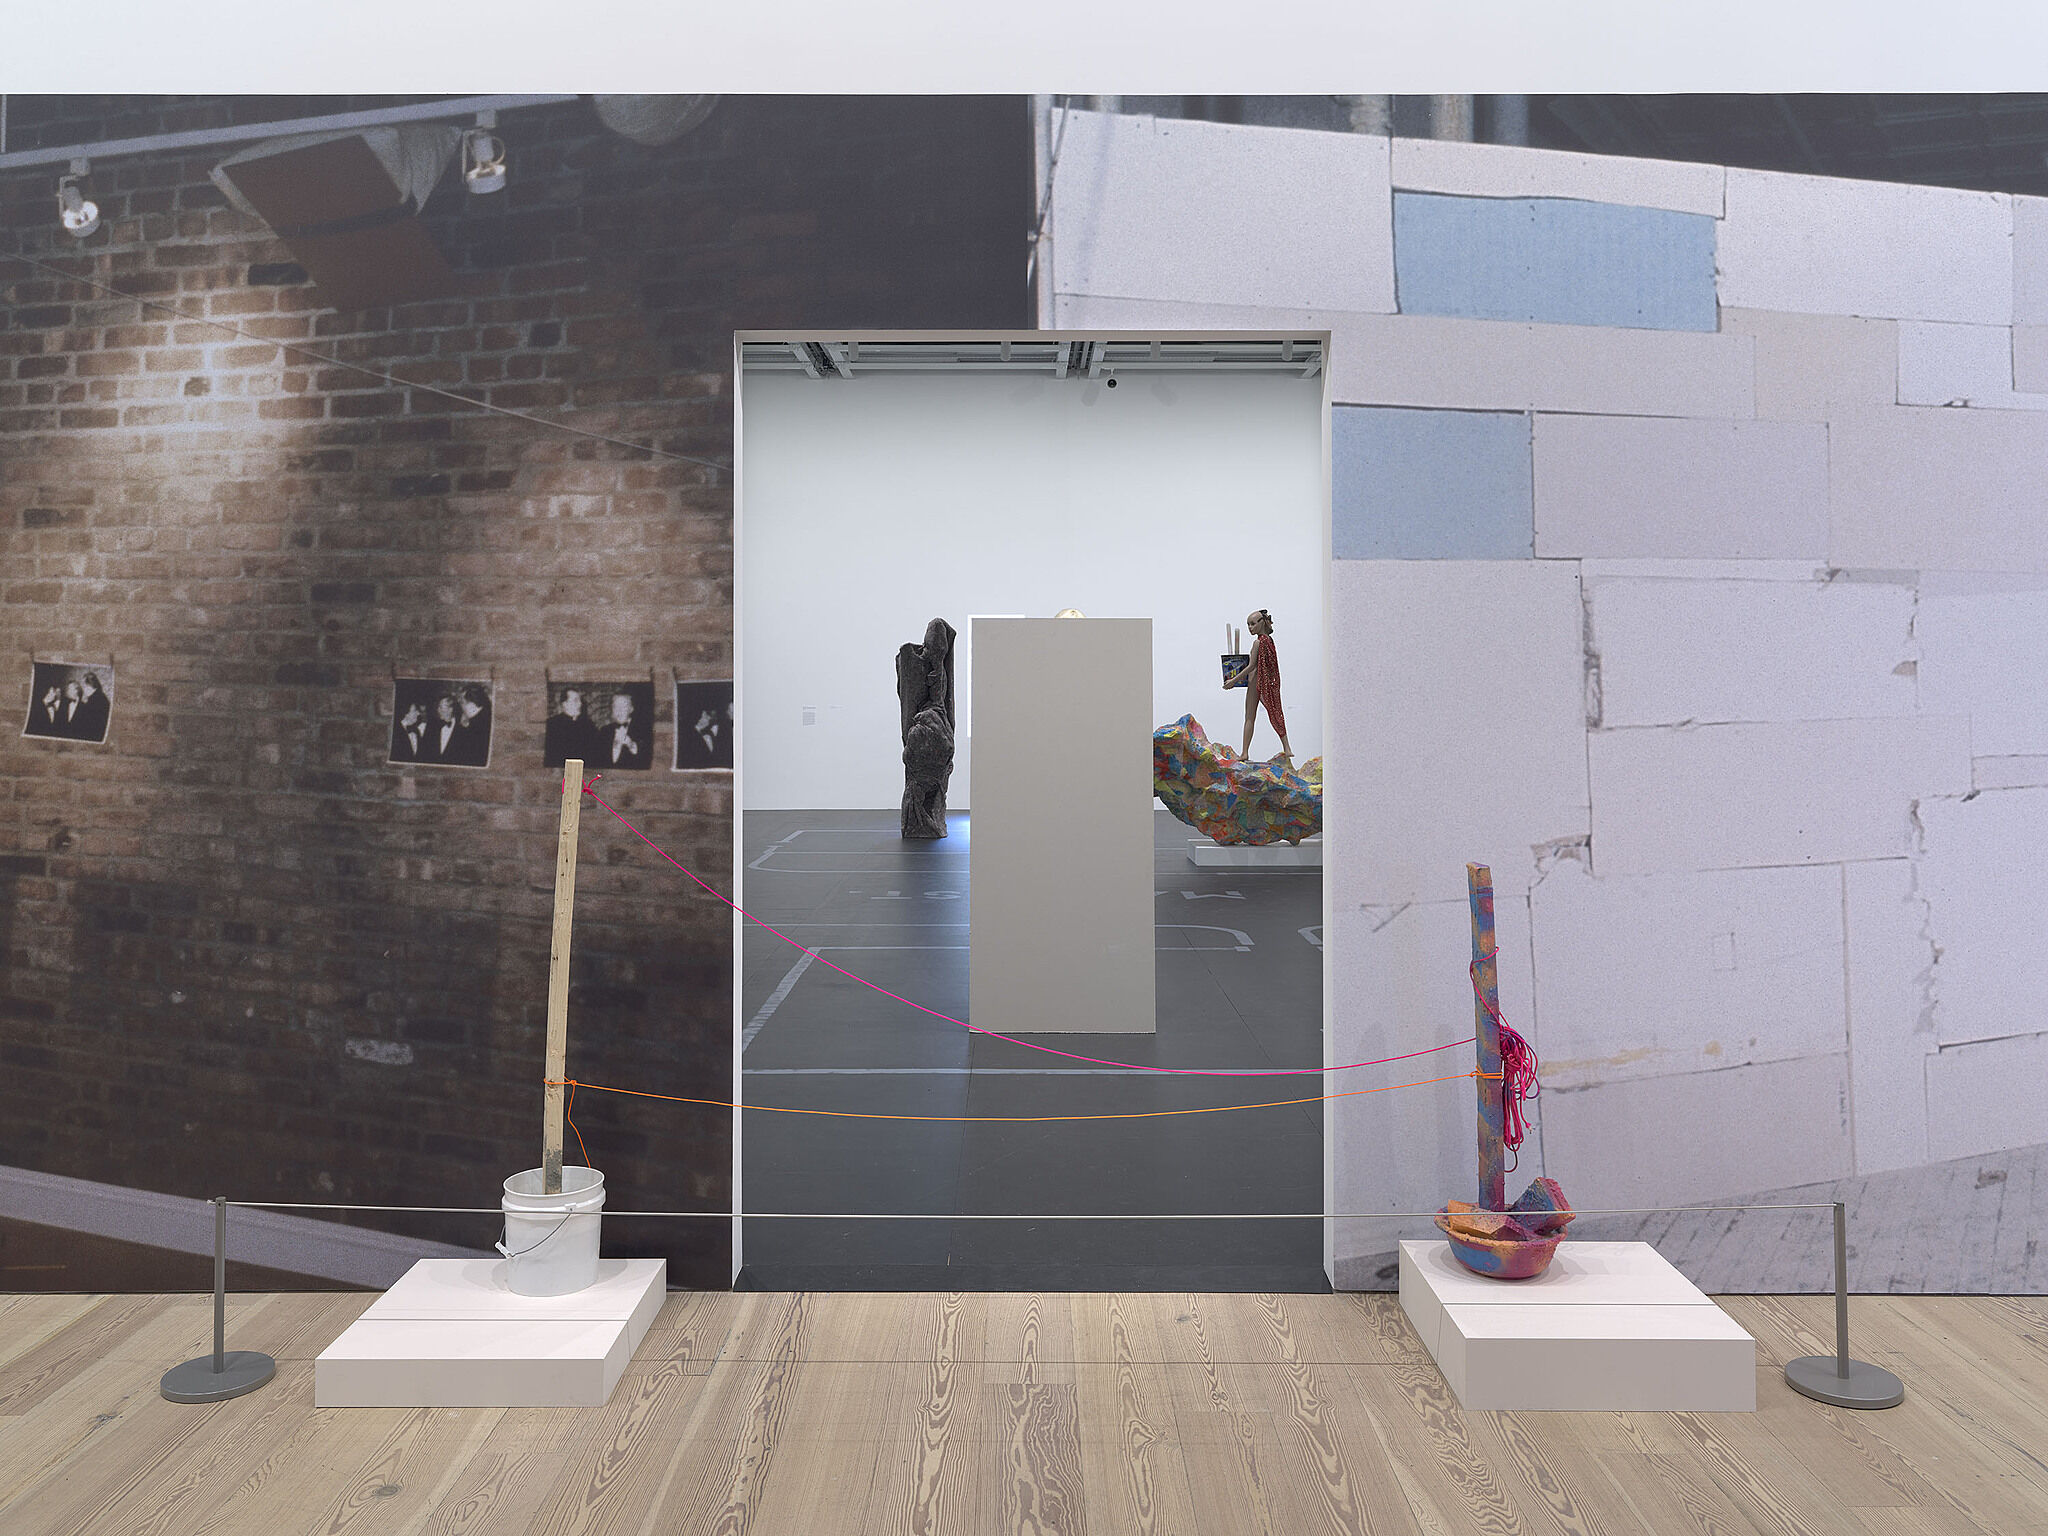 Installation view of the Whitney galleries with various sculptures and a doorway blocked by a stanchion.